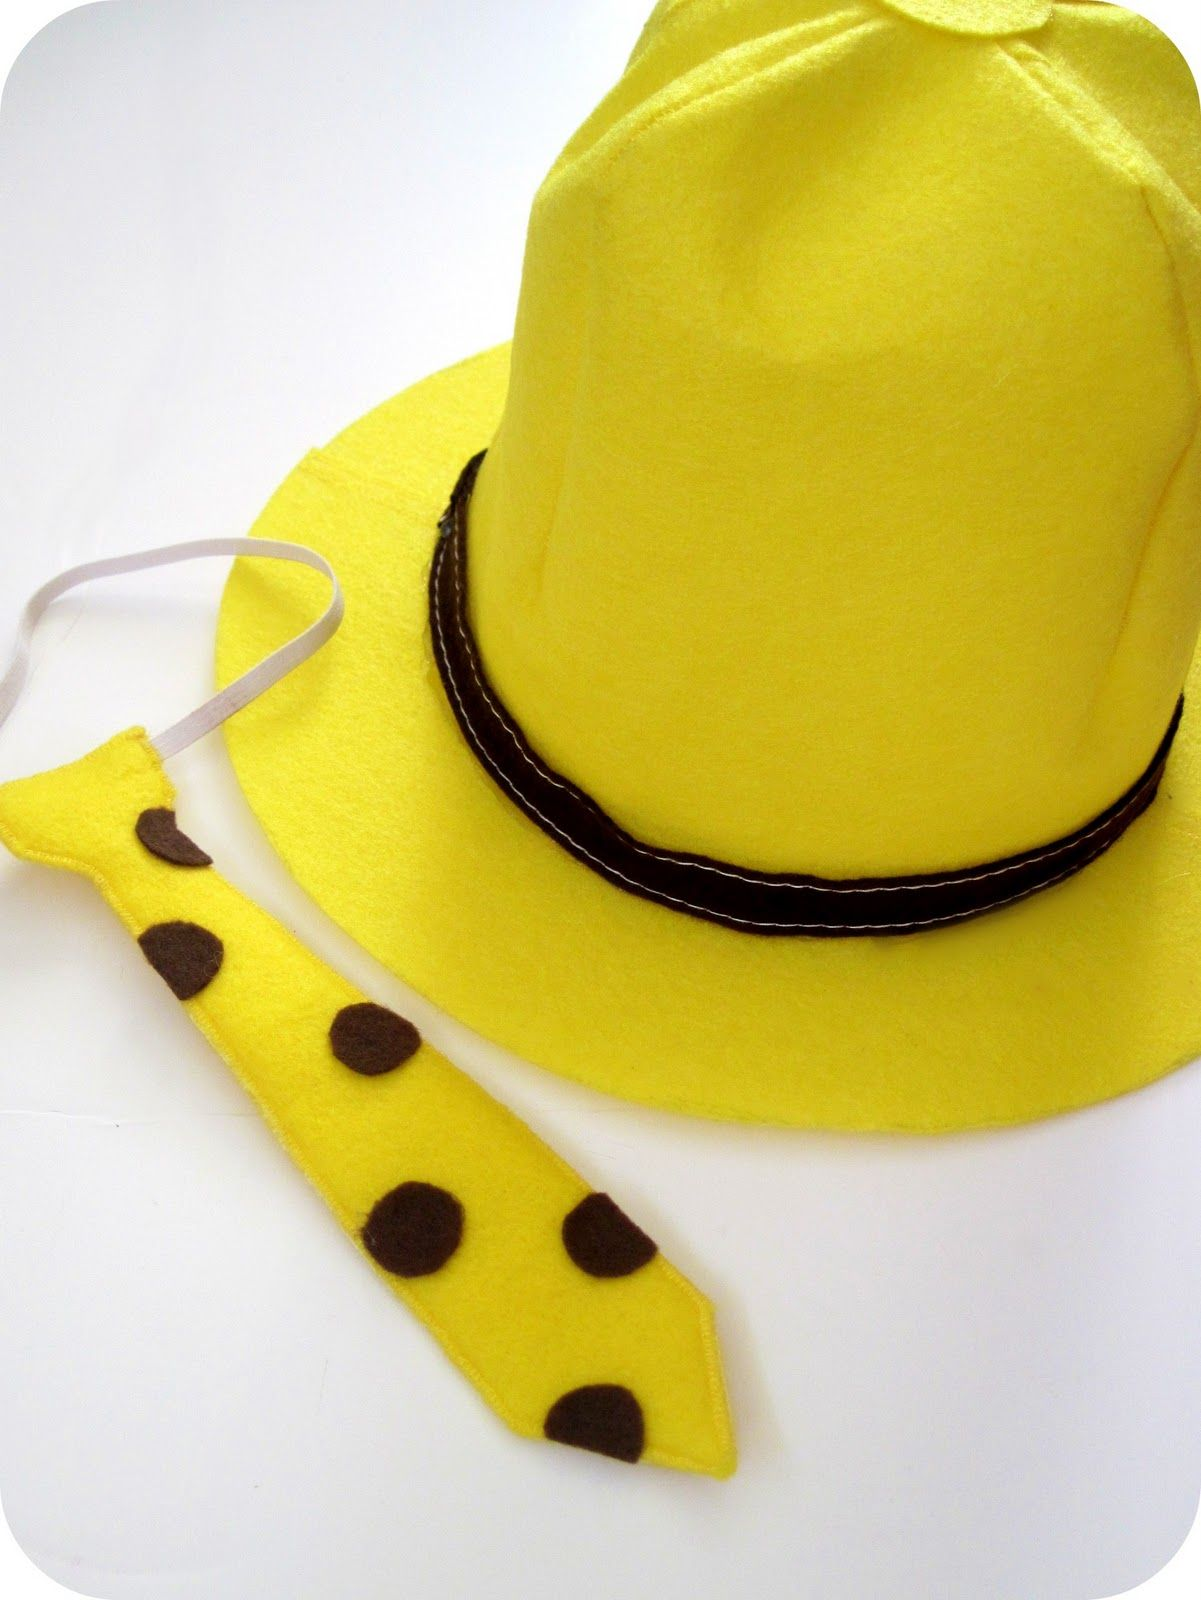 another homemade man in the yellow hat costume